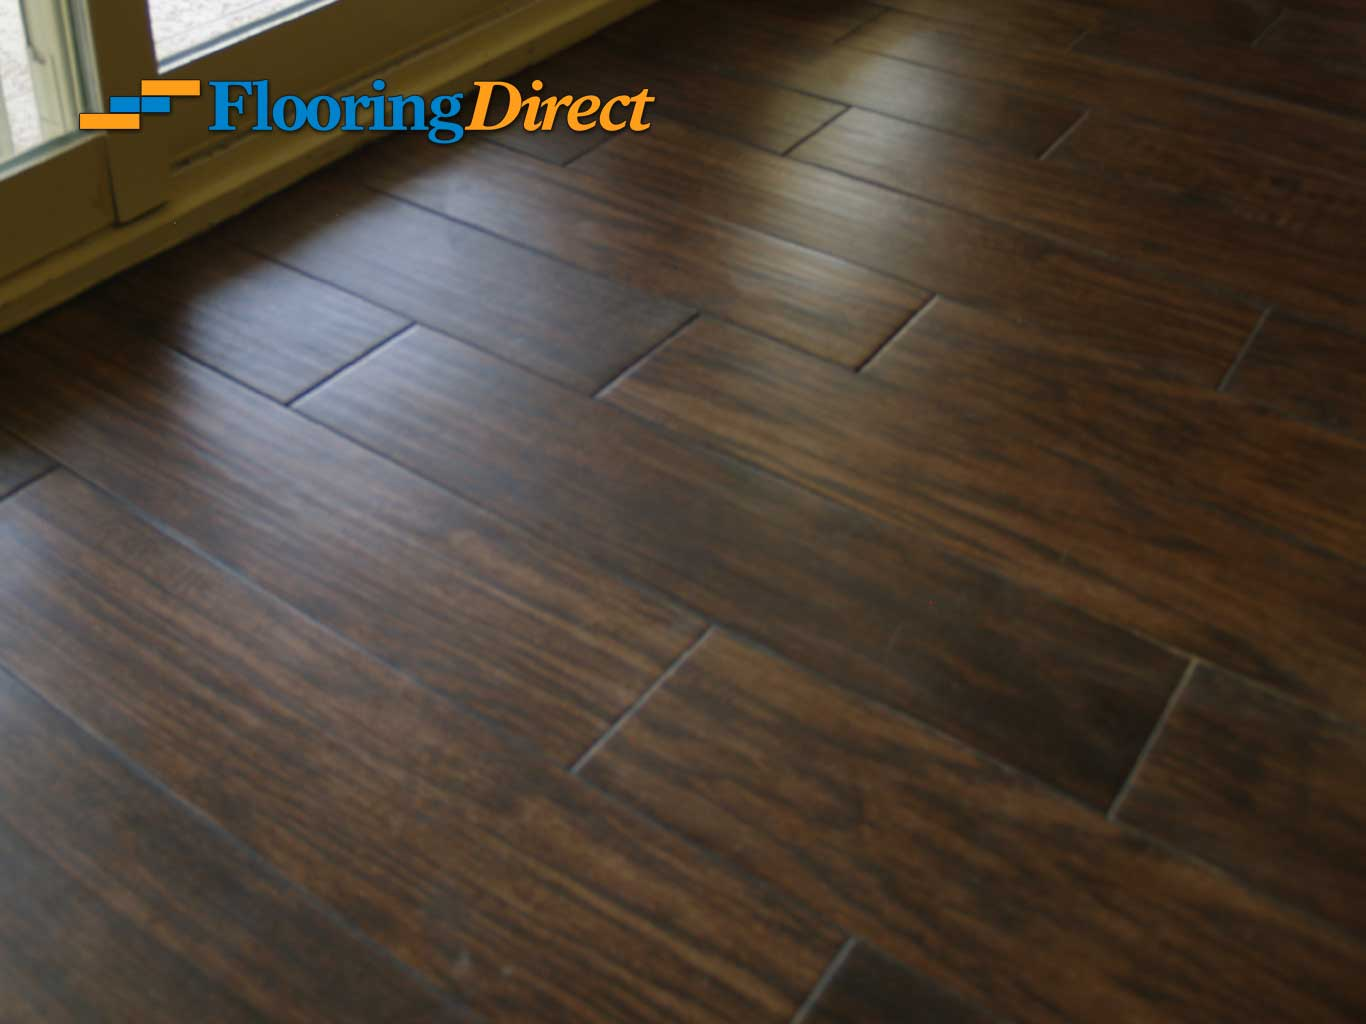 Wood look floor tile Tile wood floor